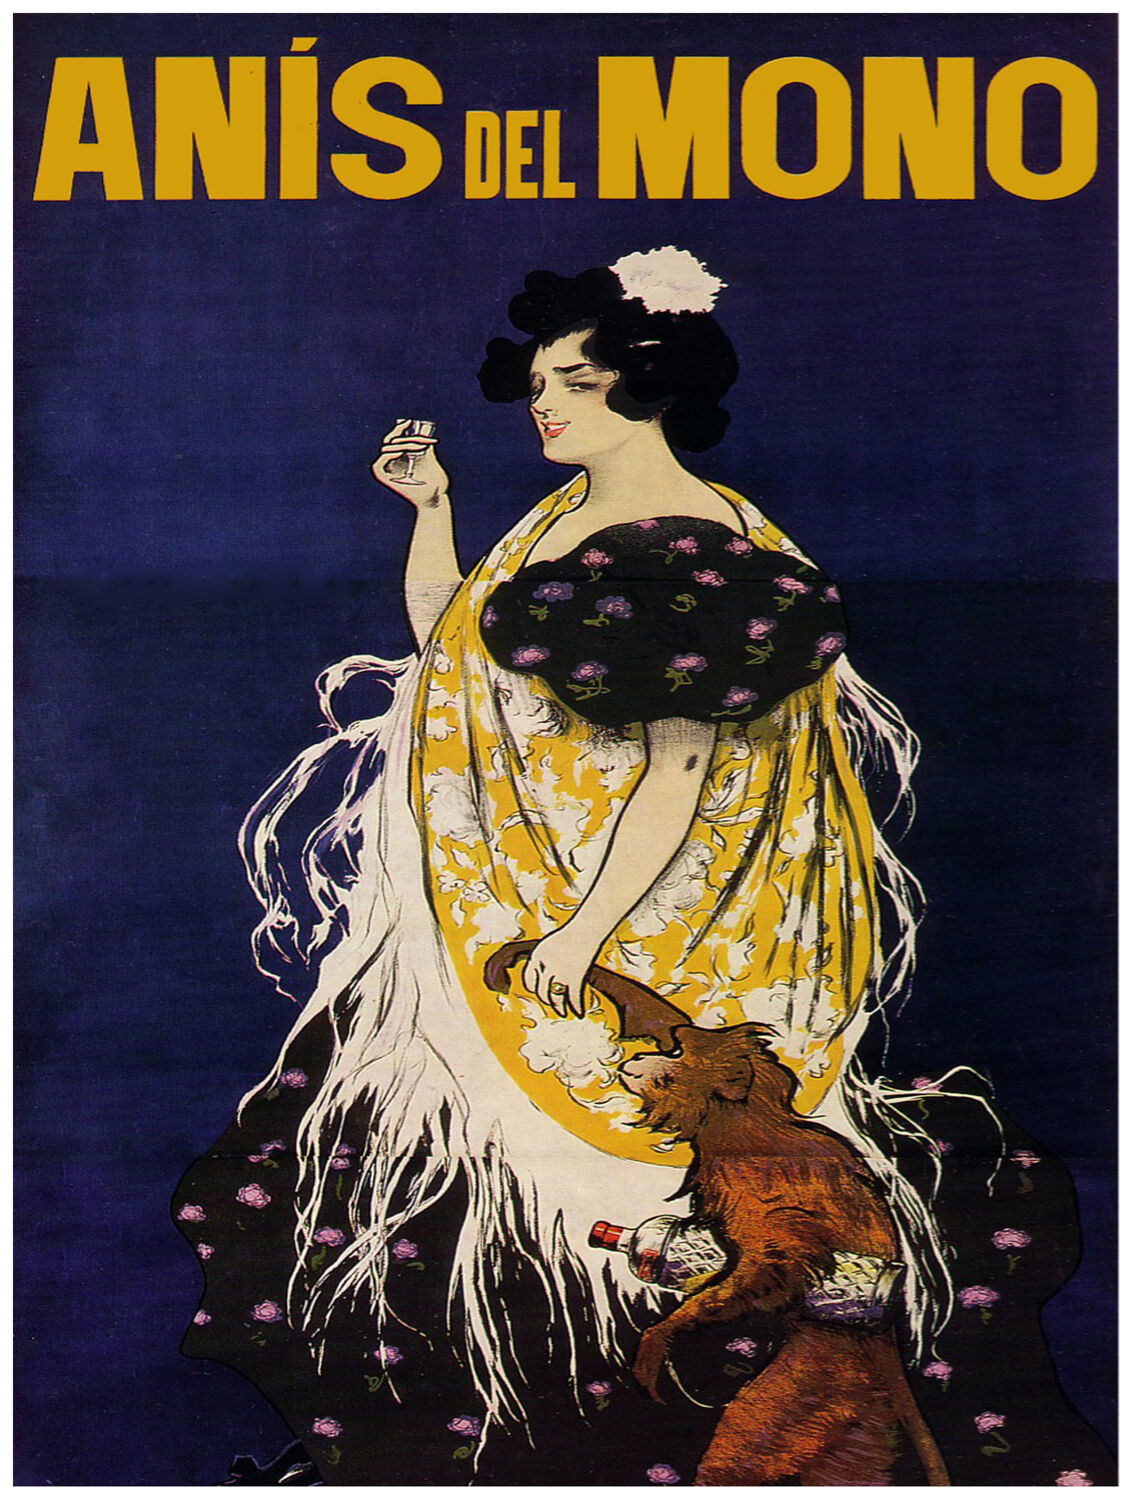 471.Anis del Mono Nouveau Art Decor POSTER Ad. Graphics to decorate home office.